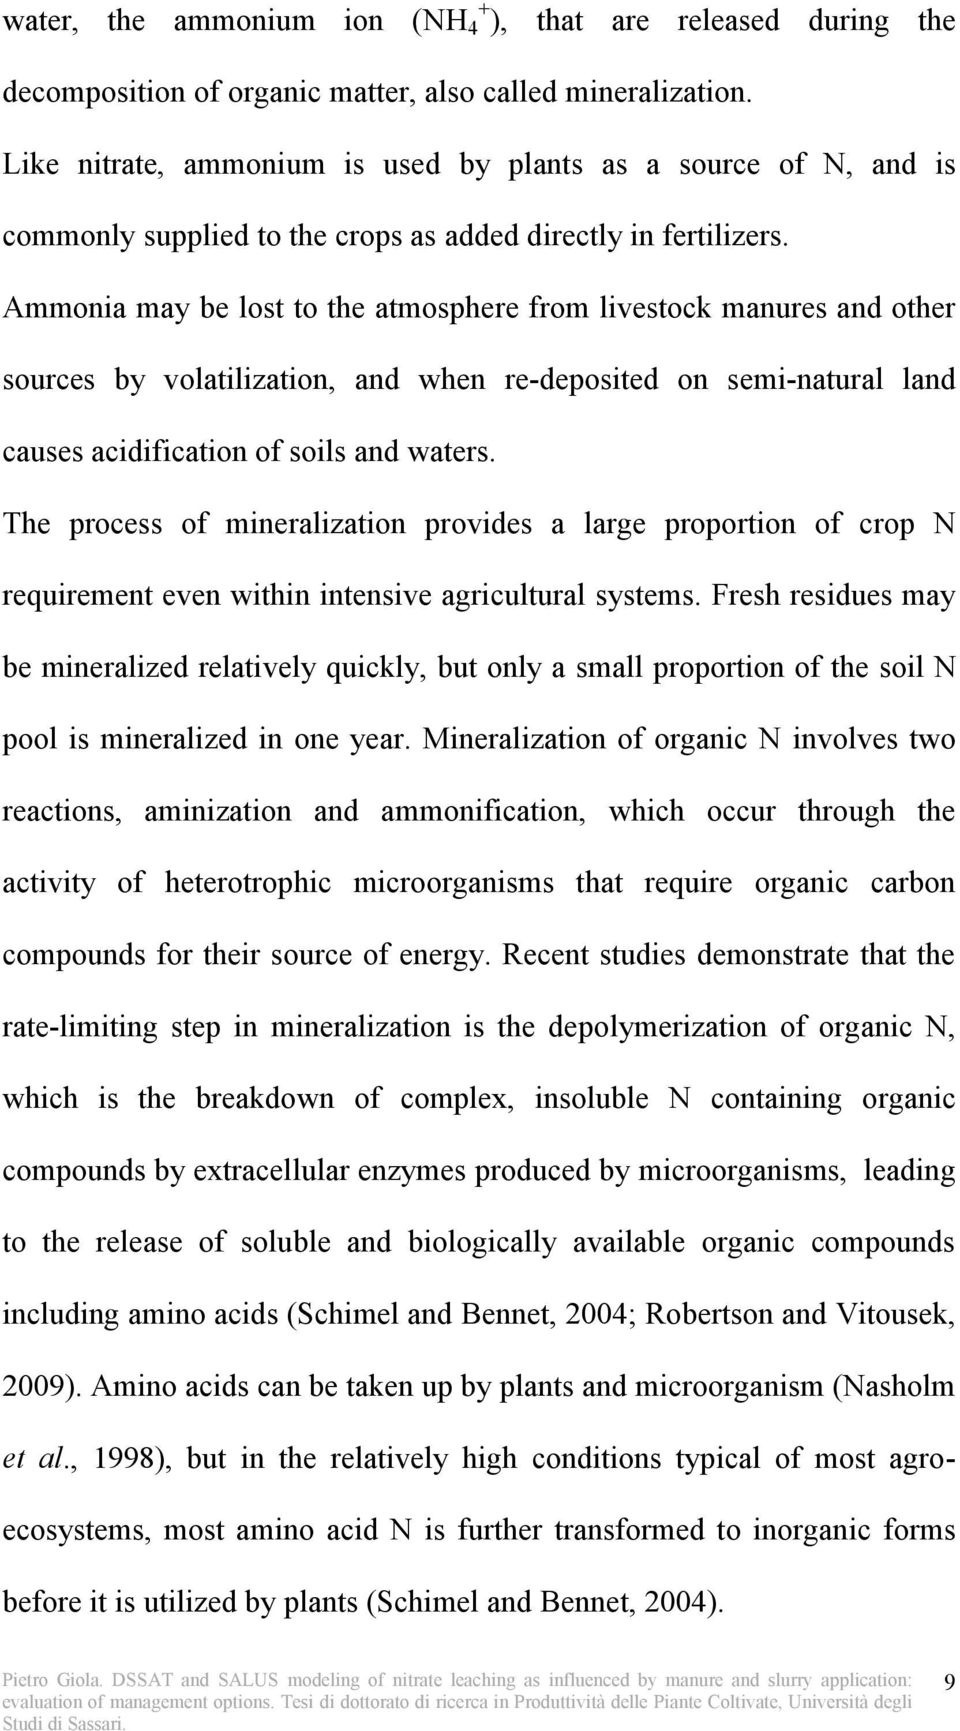 Ammonia may be lost to the atmosphere from livestock manures and other sources by volatilization, and when re-deposited on semi-natural land causes acidification of soils and waters.